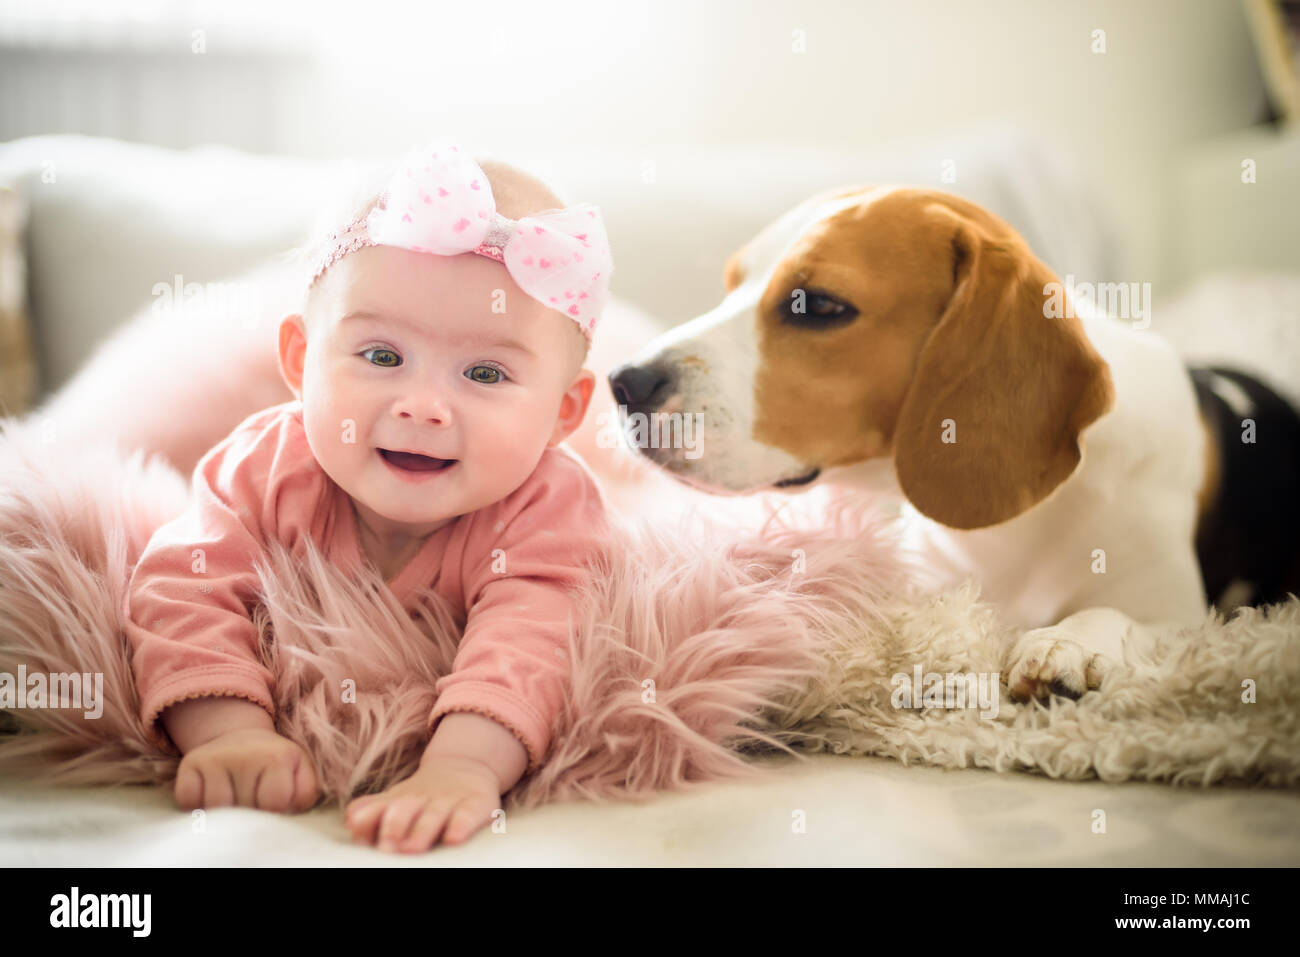 This Sweet Baby Girl and Her Dog Share the Same Rare Birth Defect